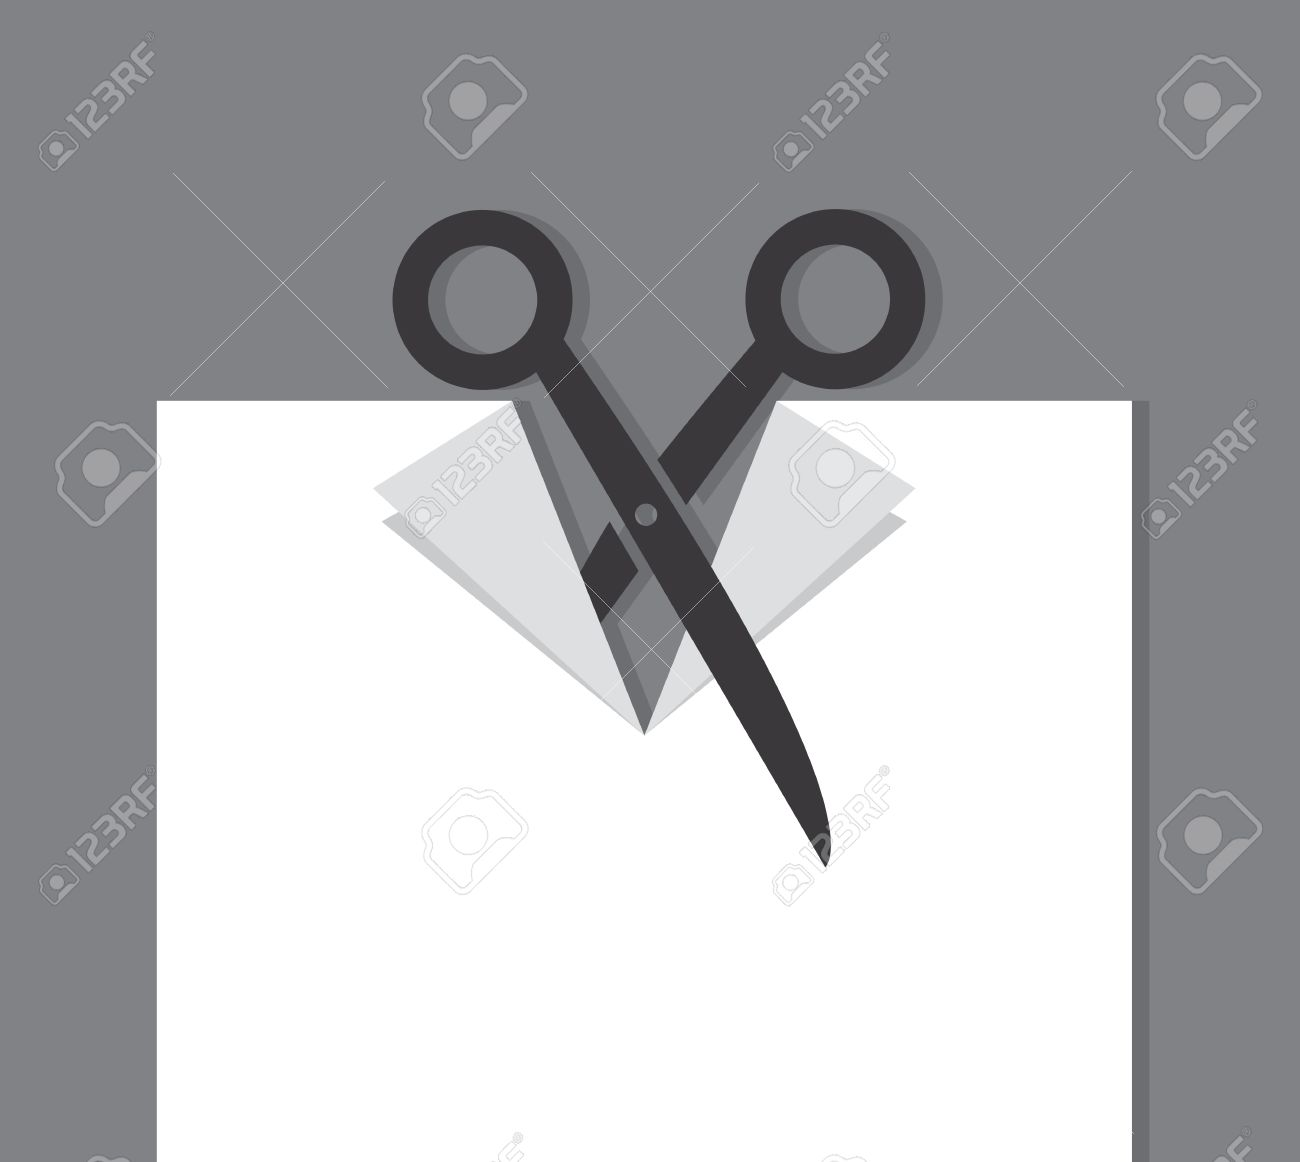 Scissors cutting through a piece of paper Stock Vector - 20763507